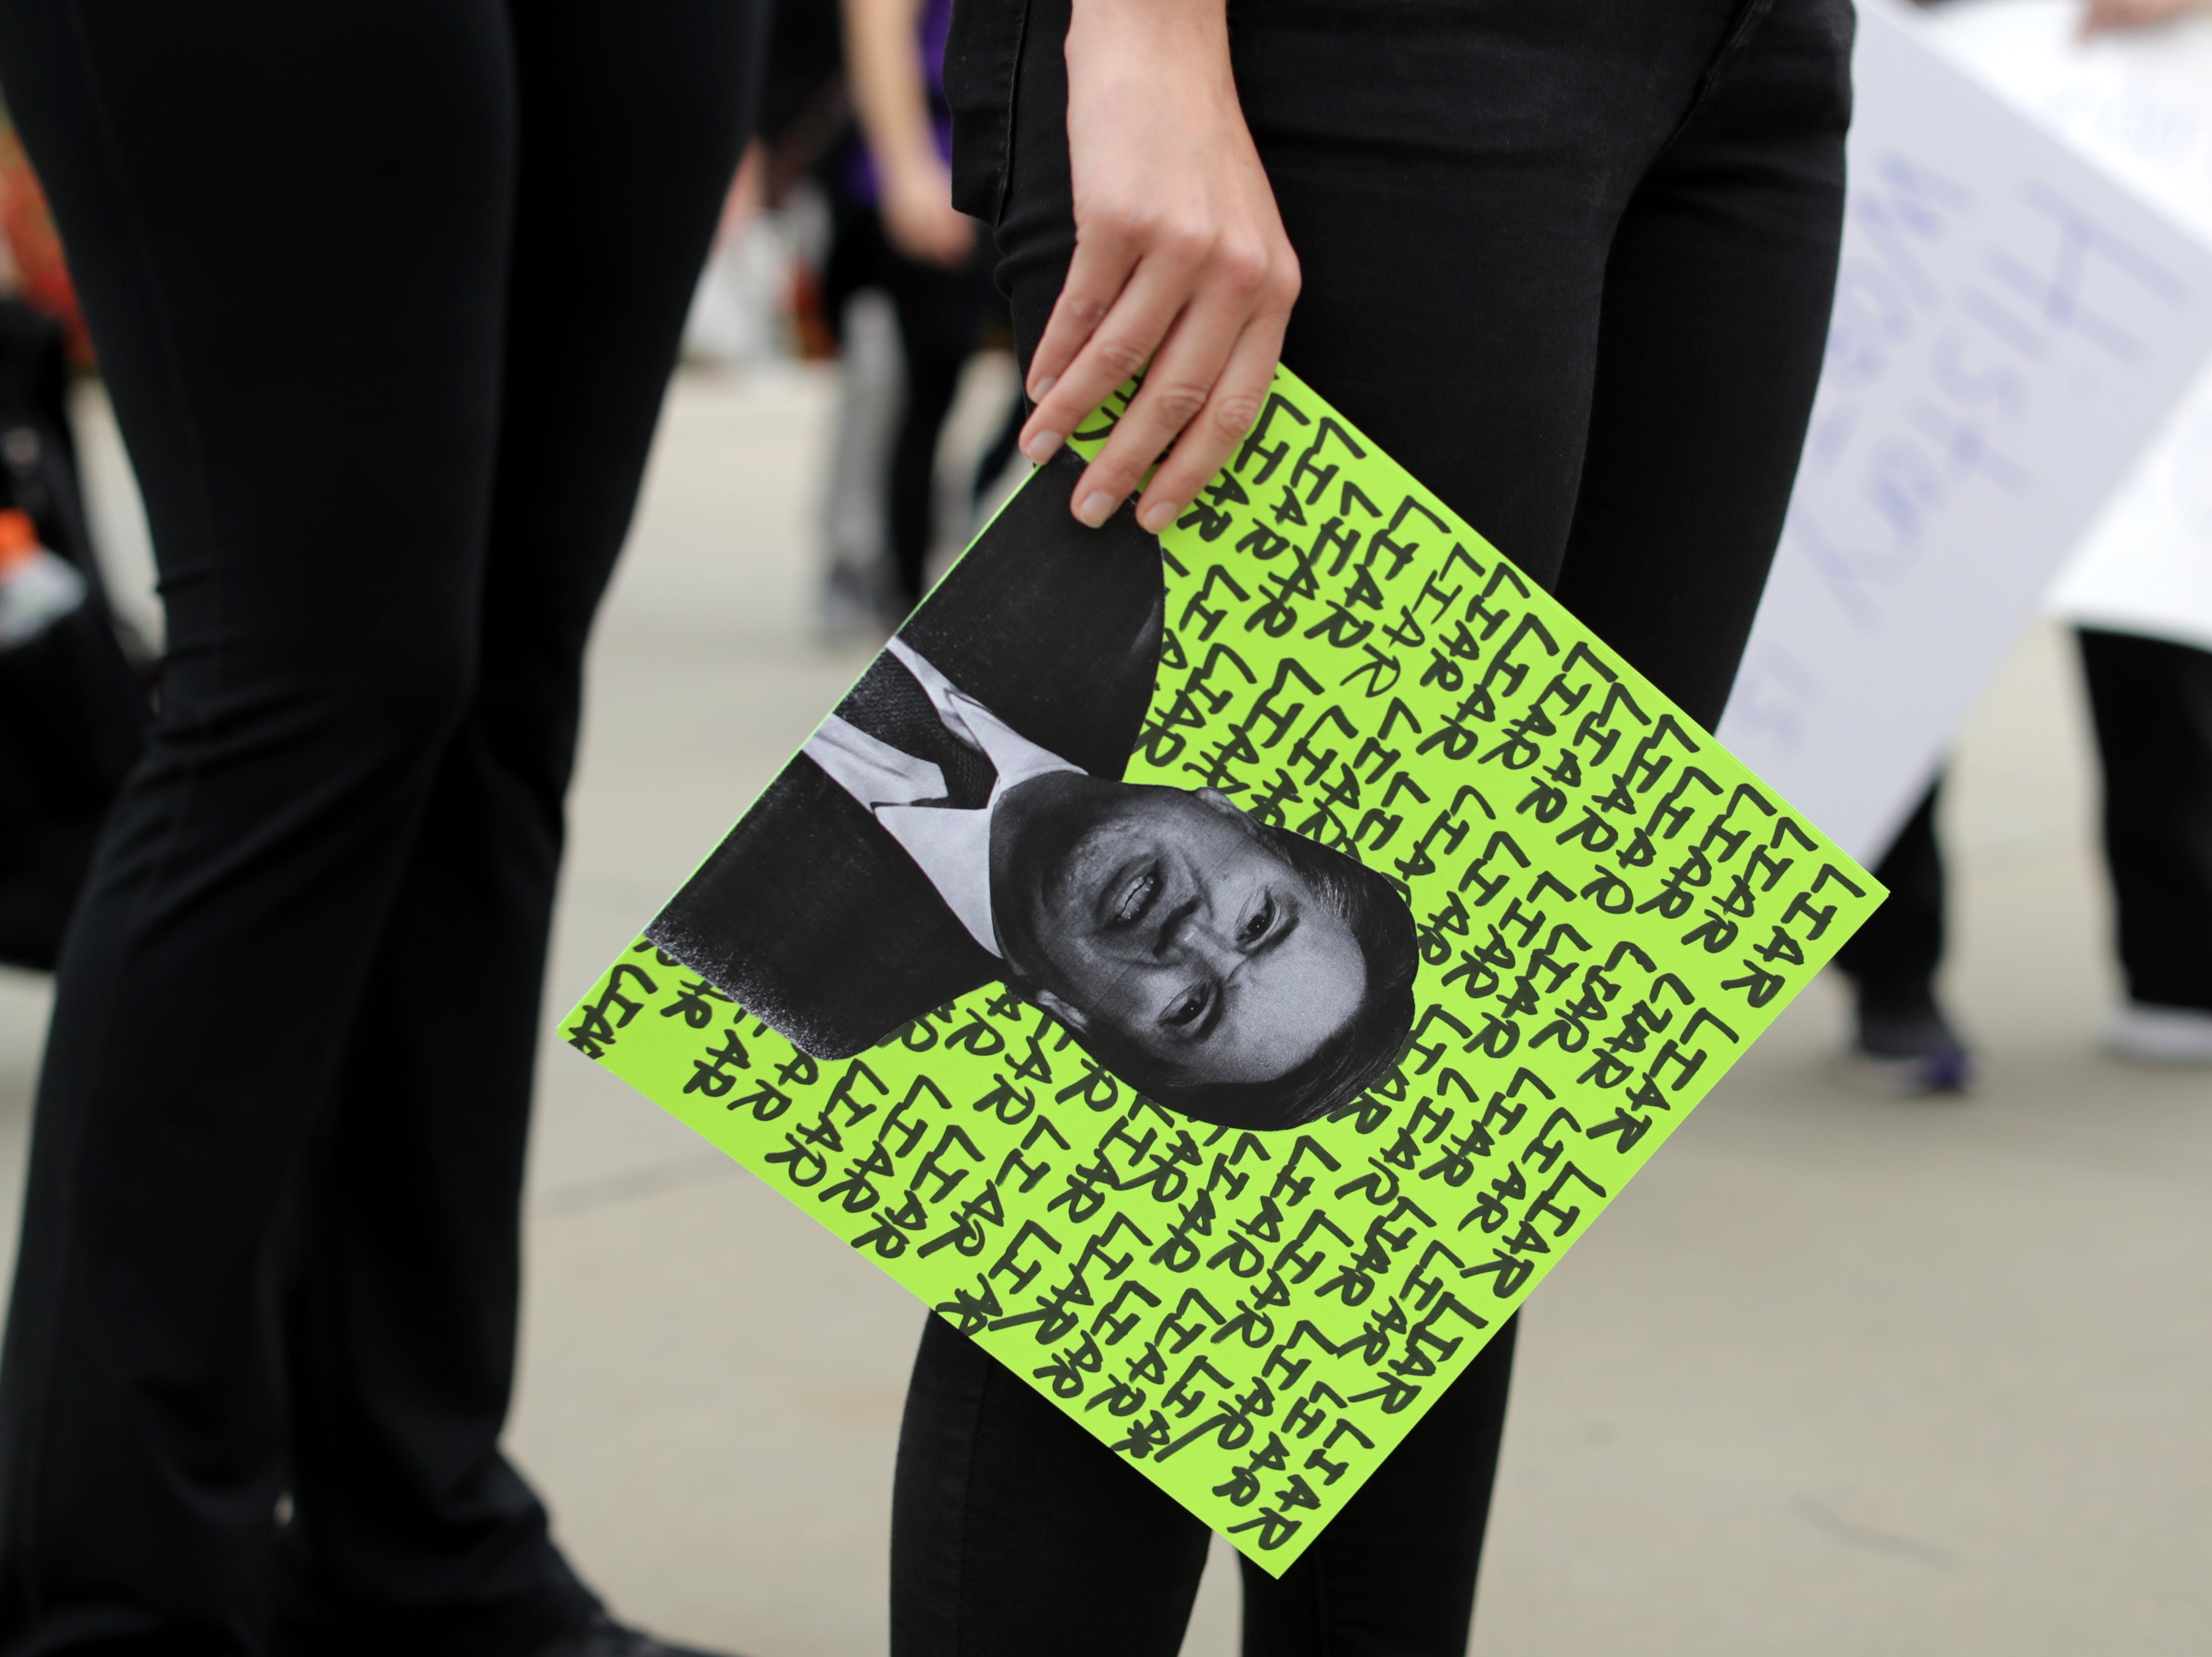 WASHINGTON, DC - OCTOBER 06: Protesters begin to gather outside the Supreme Court to rally against the confirmation of associate justice nominee Judge Brett Kavanaugh October 06, 2018 in Washington, DC. The Senate is scheduled to vote on Kavanaugh's confirmation later in the day. (Photo by Chip Somodevilla/Getty Images)